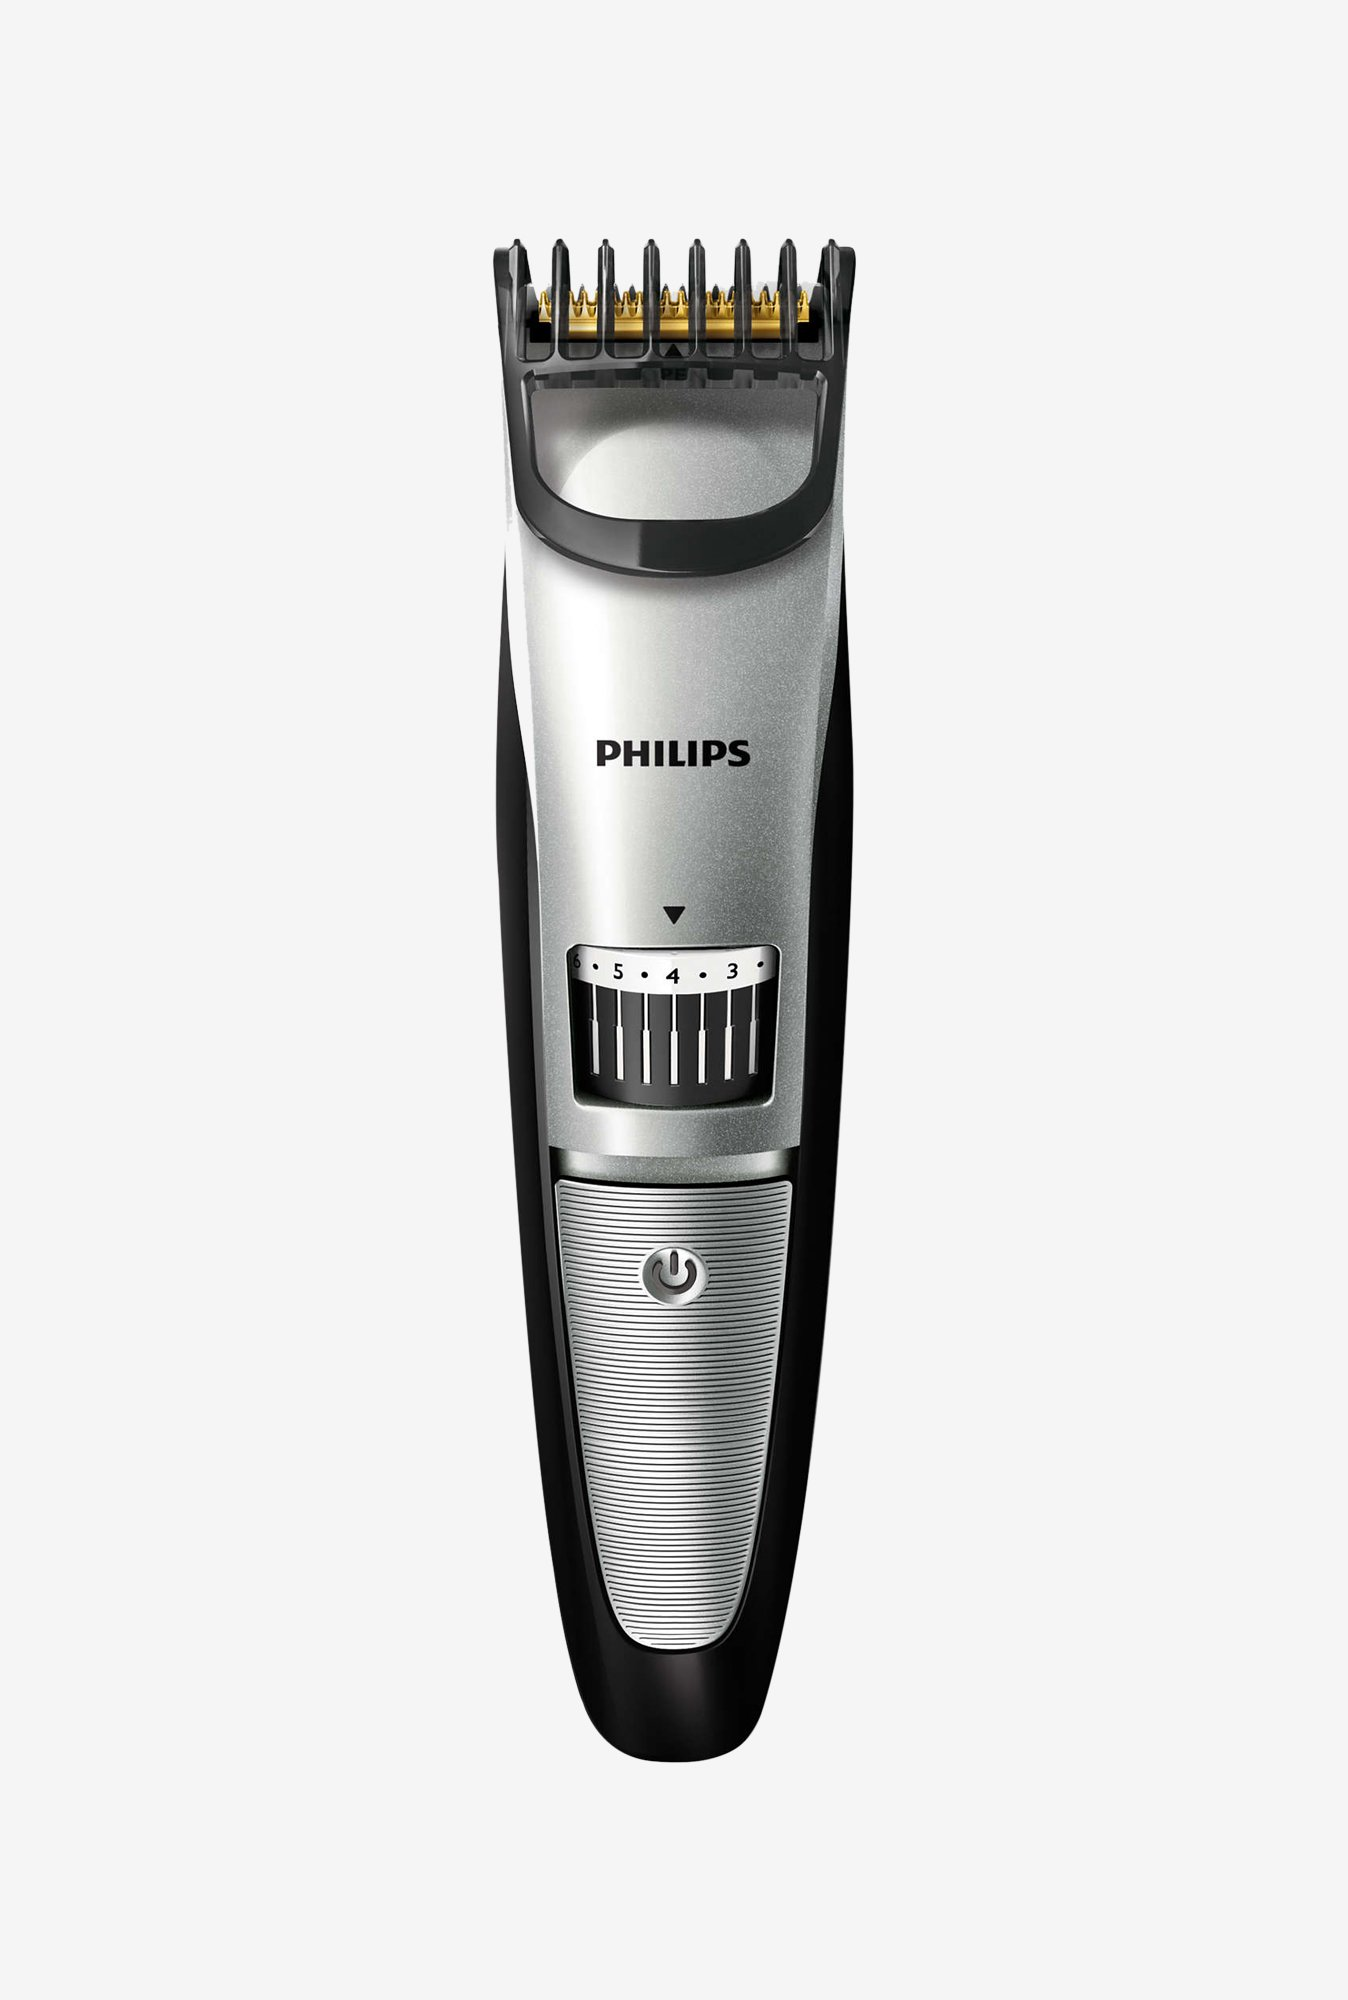 buy philips qt4018 15 pro skin advanced beard trimmer silver online at best price at tatacliq. Black Bedroom Furniture Sets. Home Design Ideas